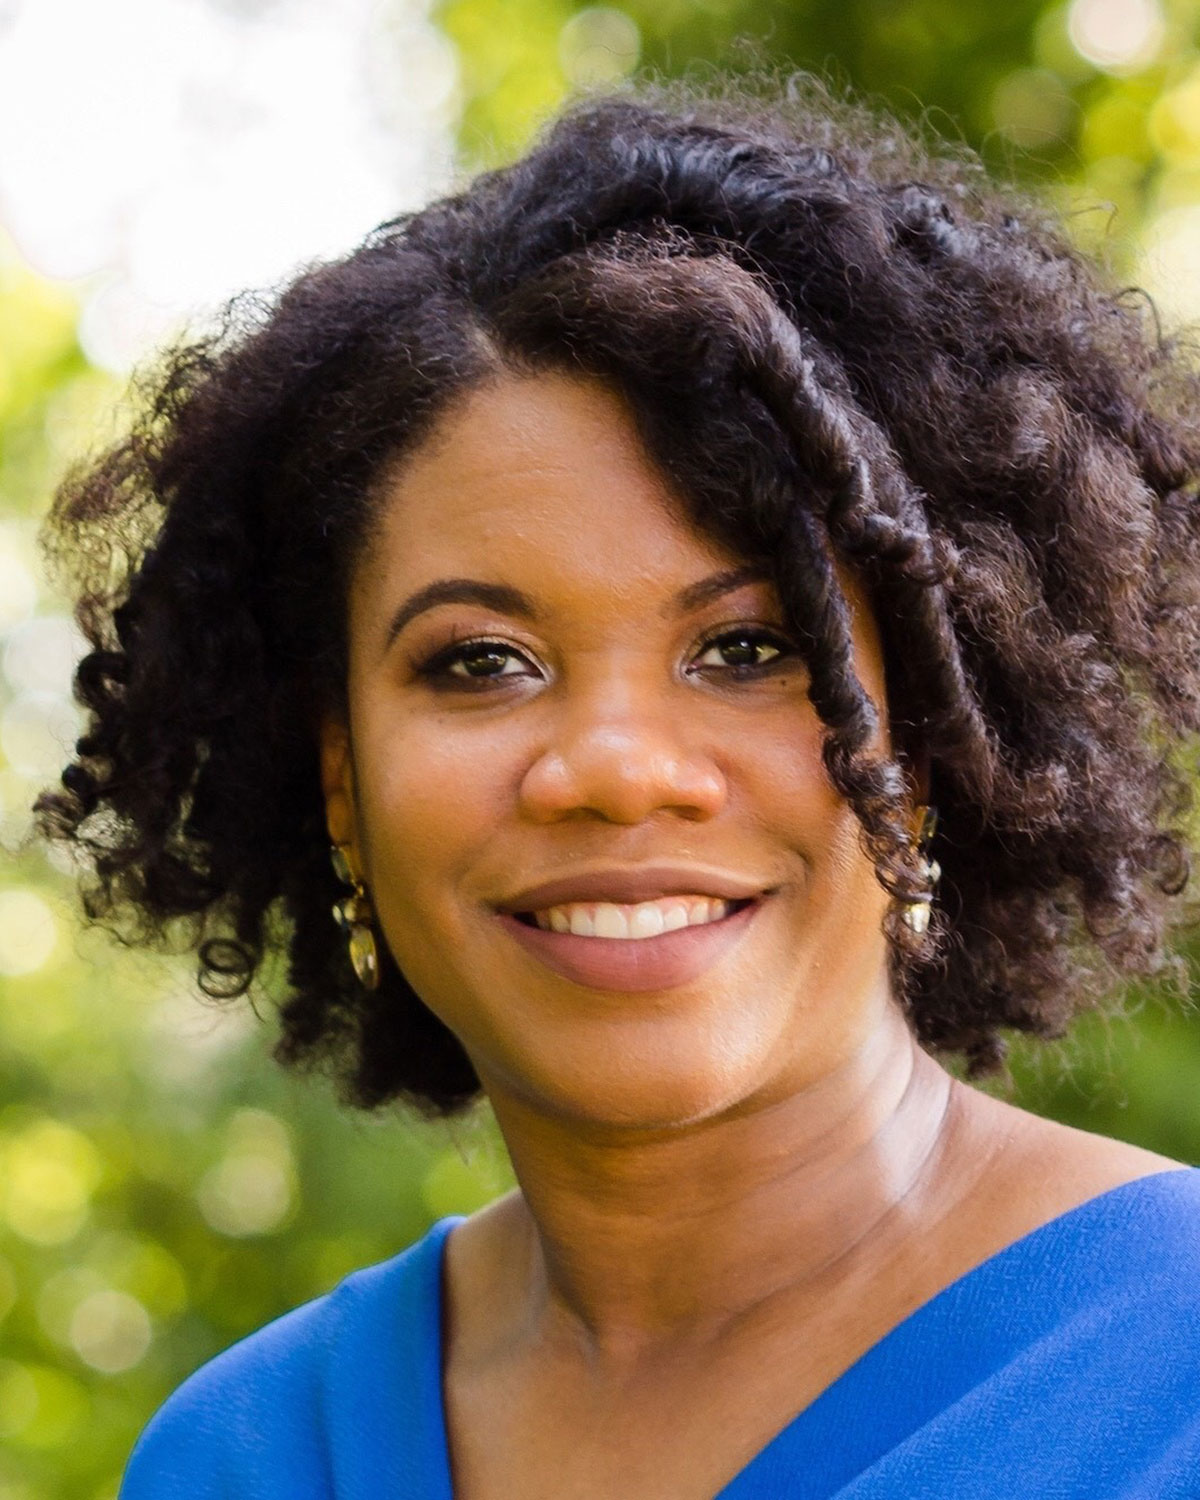 Kimberley D. Dockery, PhD, LMFT - Therapist, Behavioral & Mental Health, Newberg, OR and Tualatin, OR